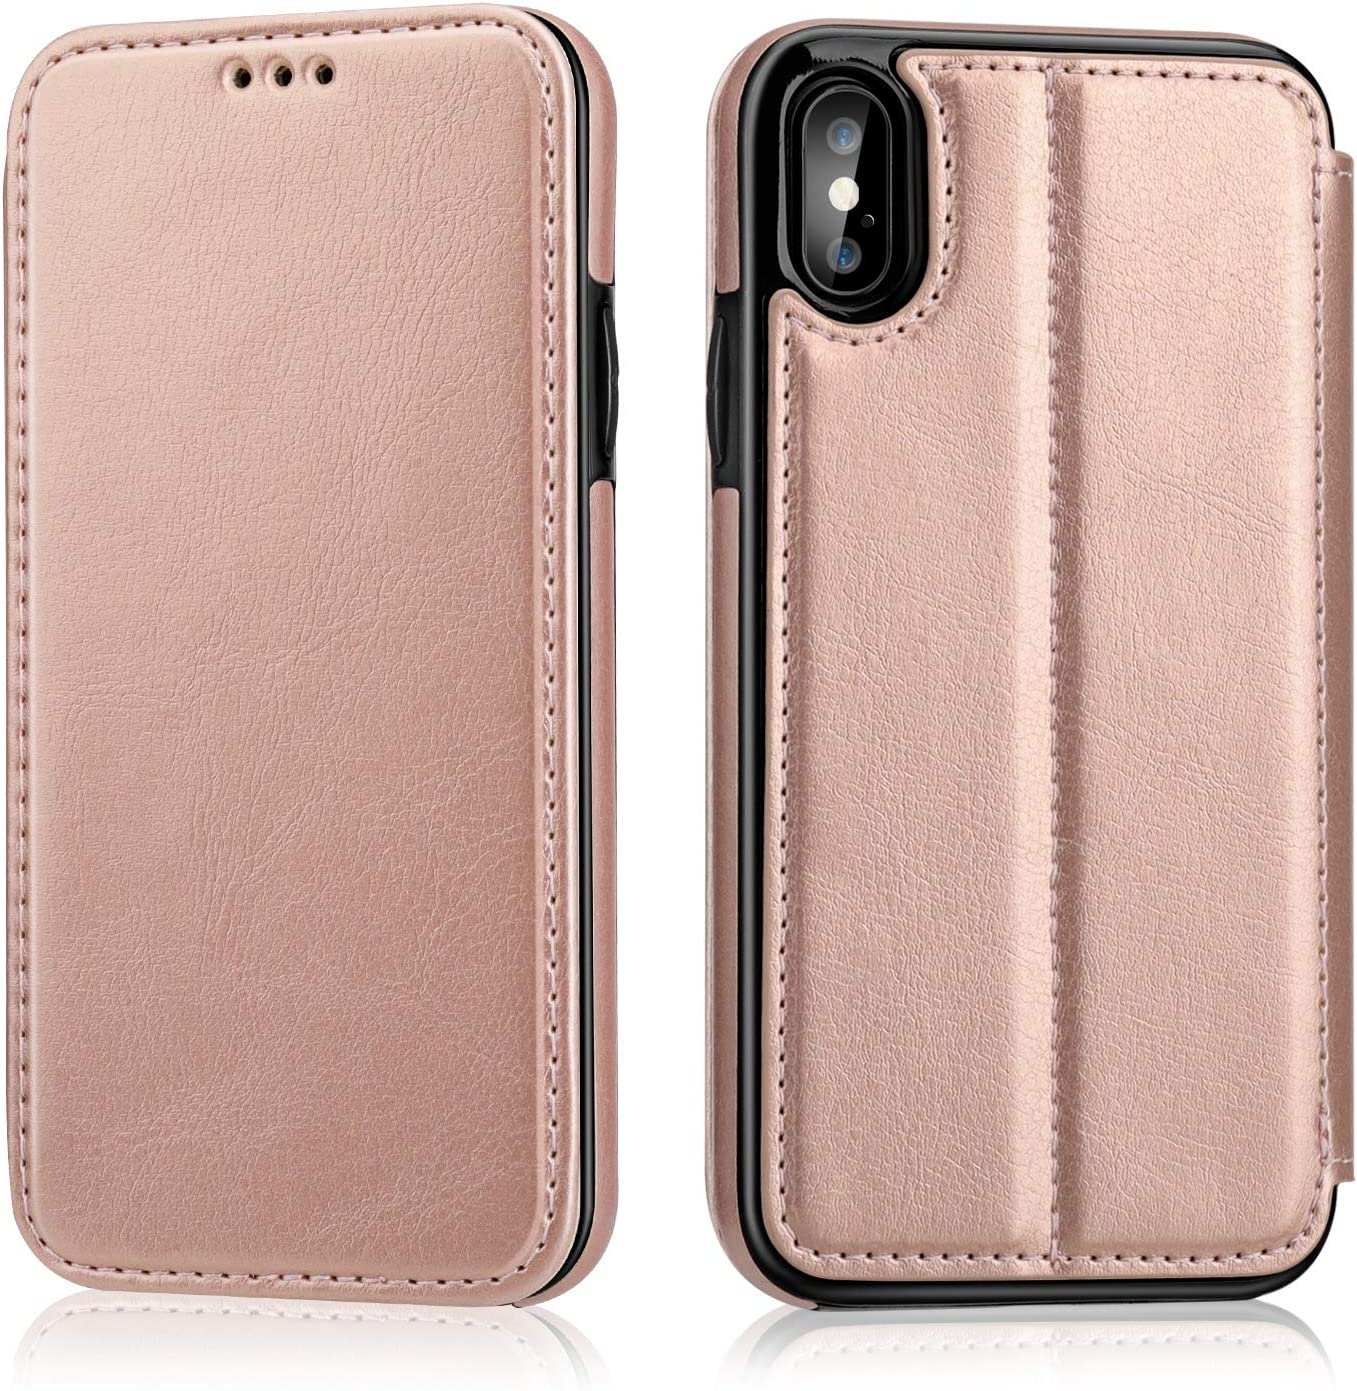 OT ONETOP iPhone Xs iPhone X Flip Case with Wallet Card Holder, Premium PU Leather Hidden Magnetic Closure Kickstand Protective Cover Case Compatible with iPhone Xs/X 5.8 Inch - Rose Gold